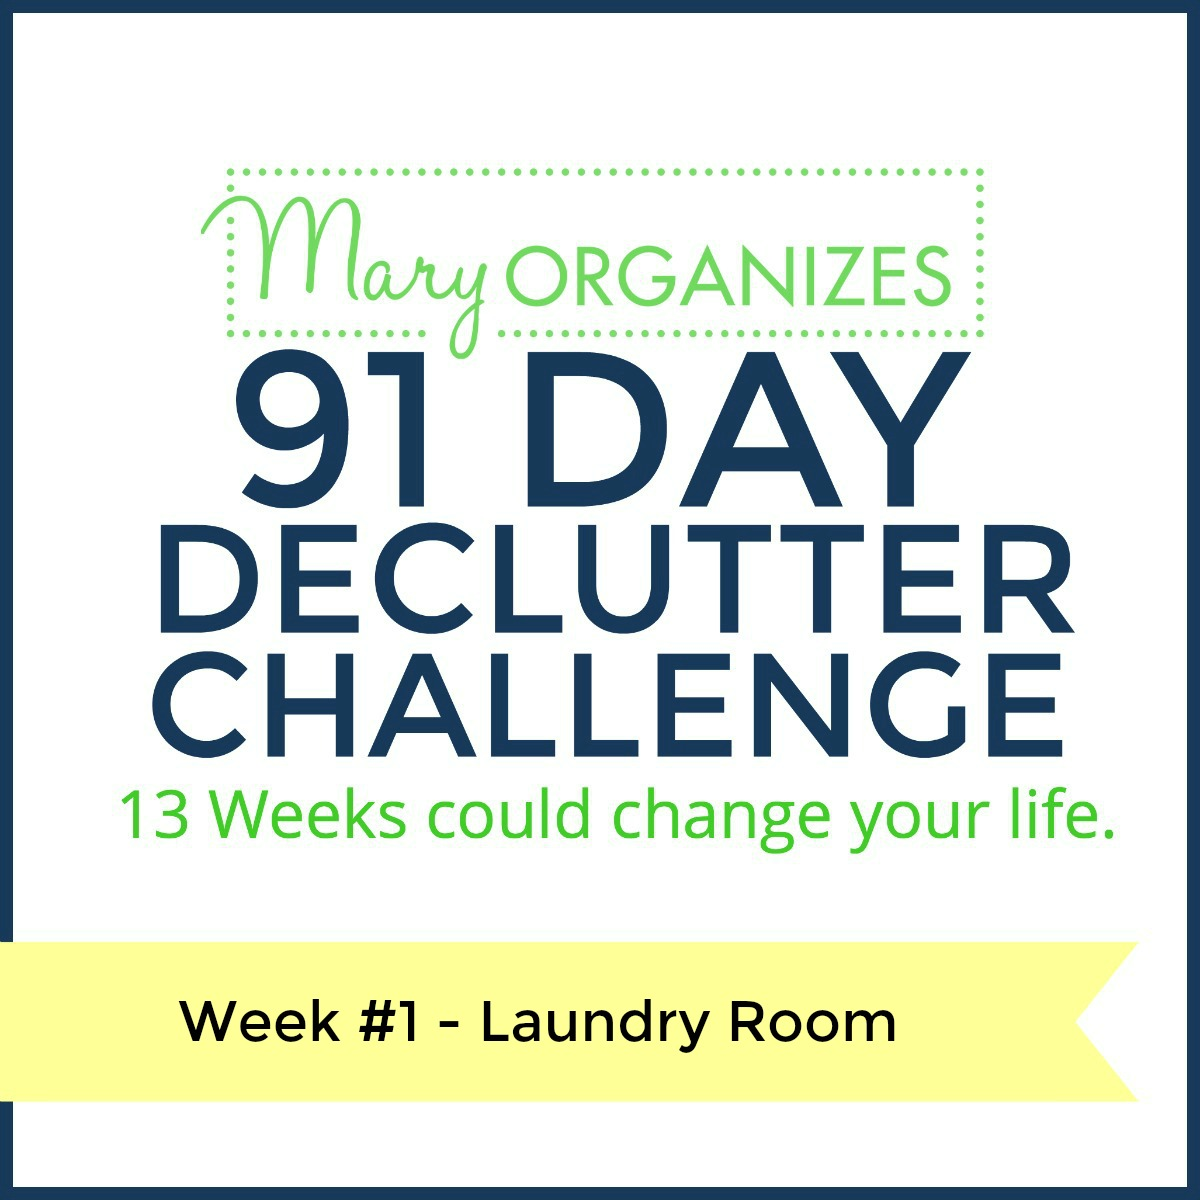 week-1-91-day-declutter-challenge-s